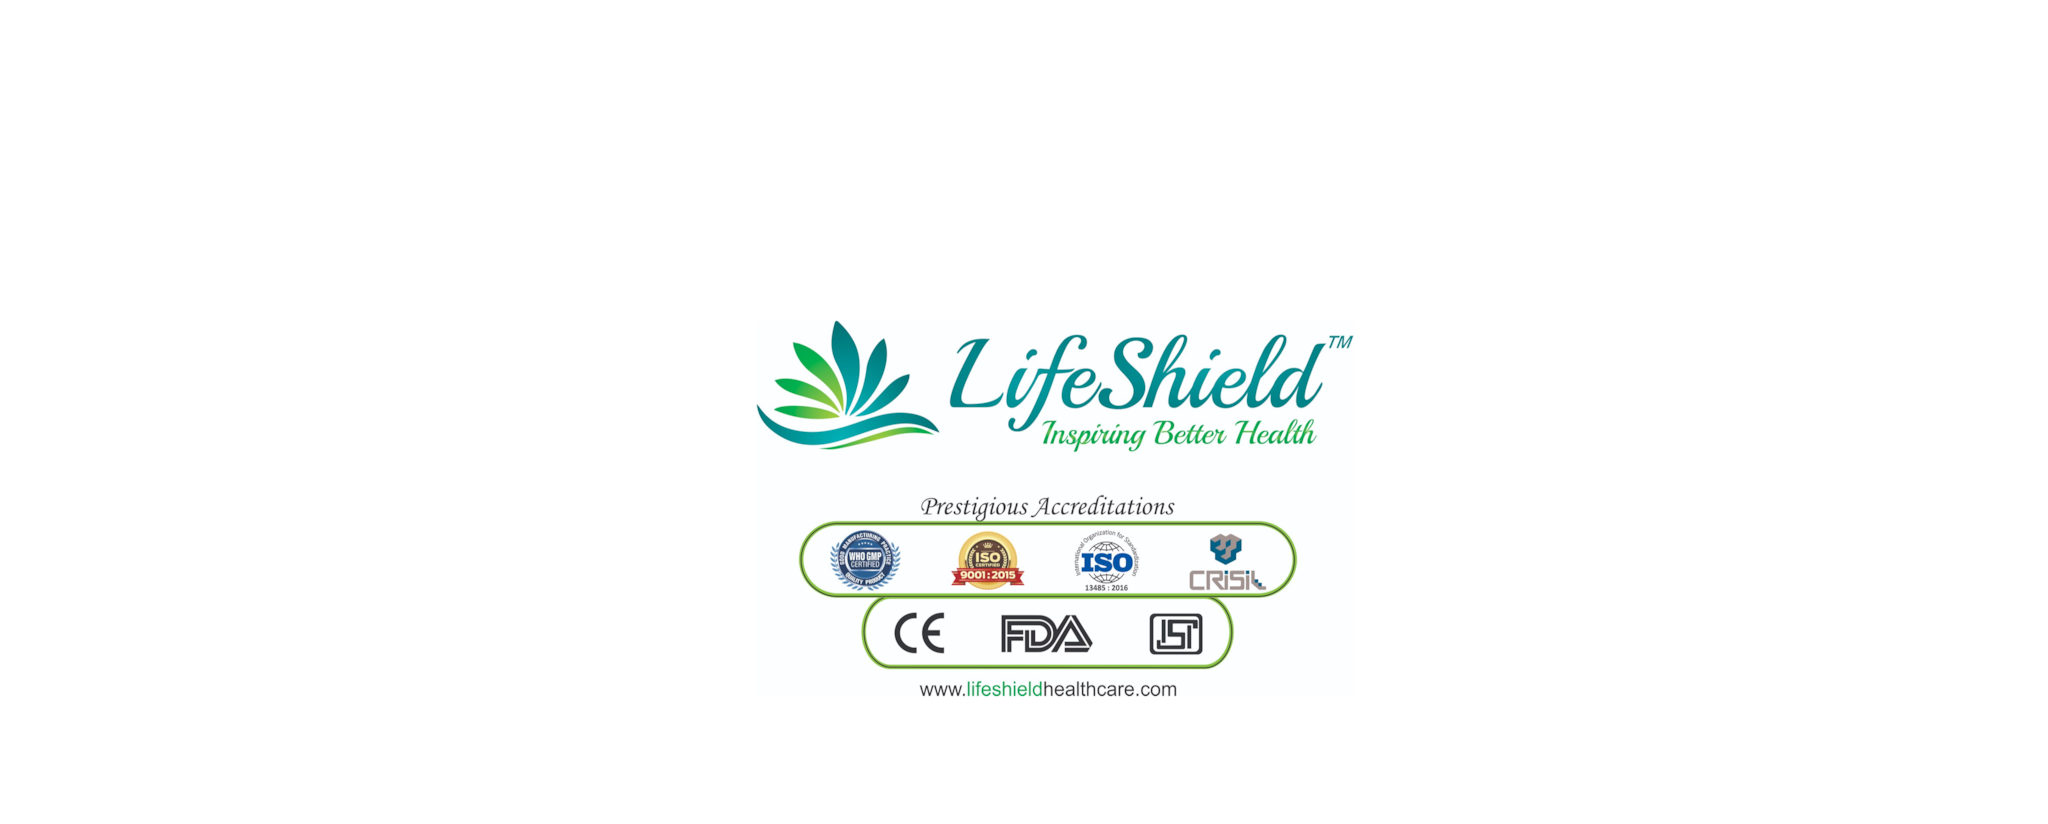 LIFESHIELD HEALTHCARE PRIVATE LIMITED - Medical Supplies and Equipment in Shahdara, Delhi